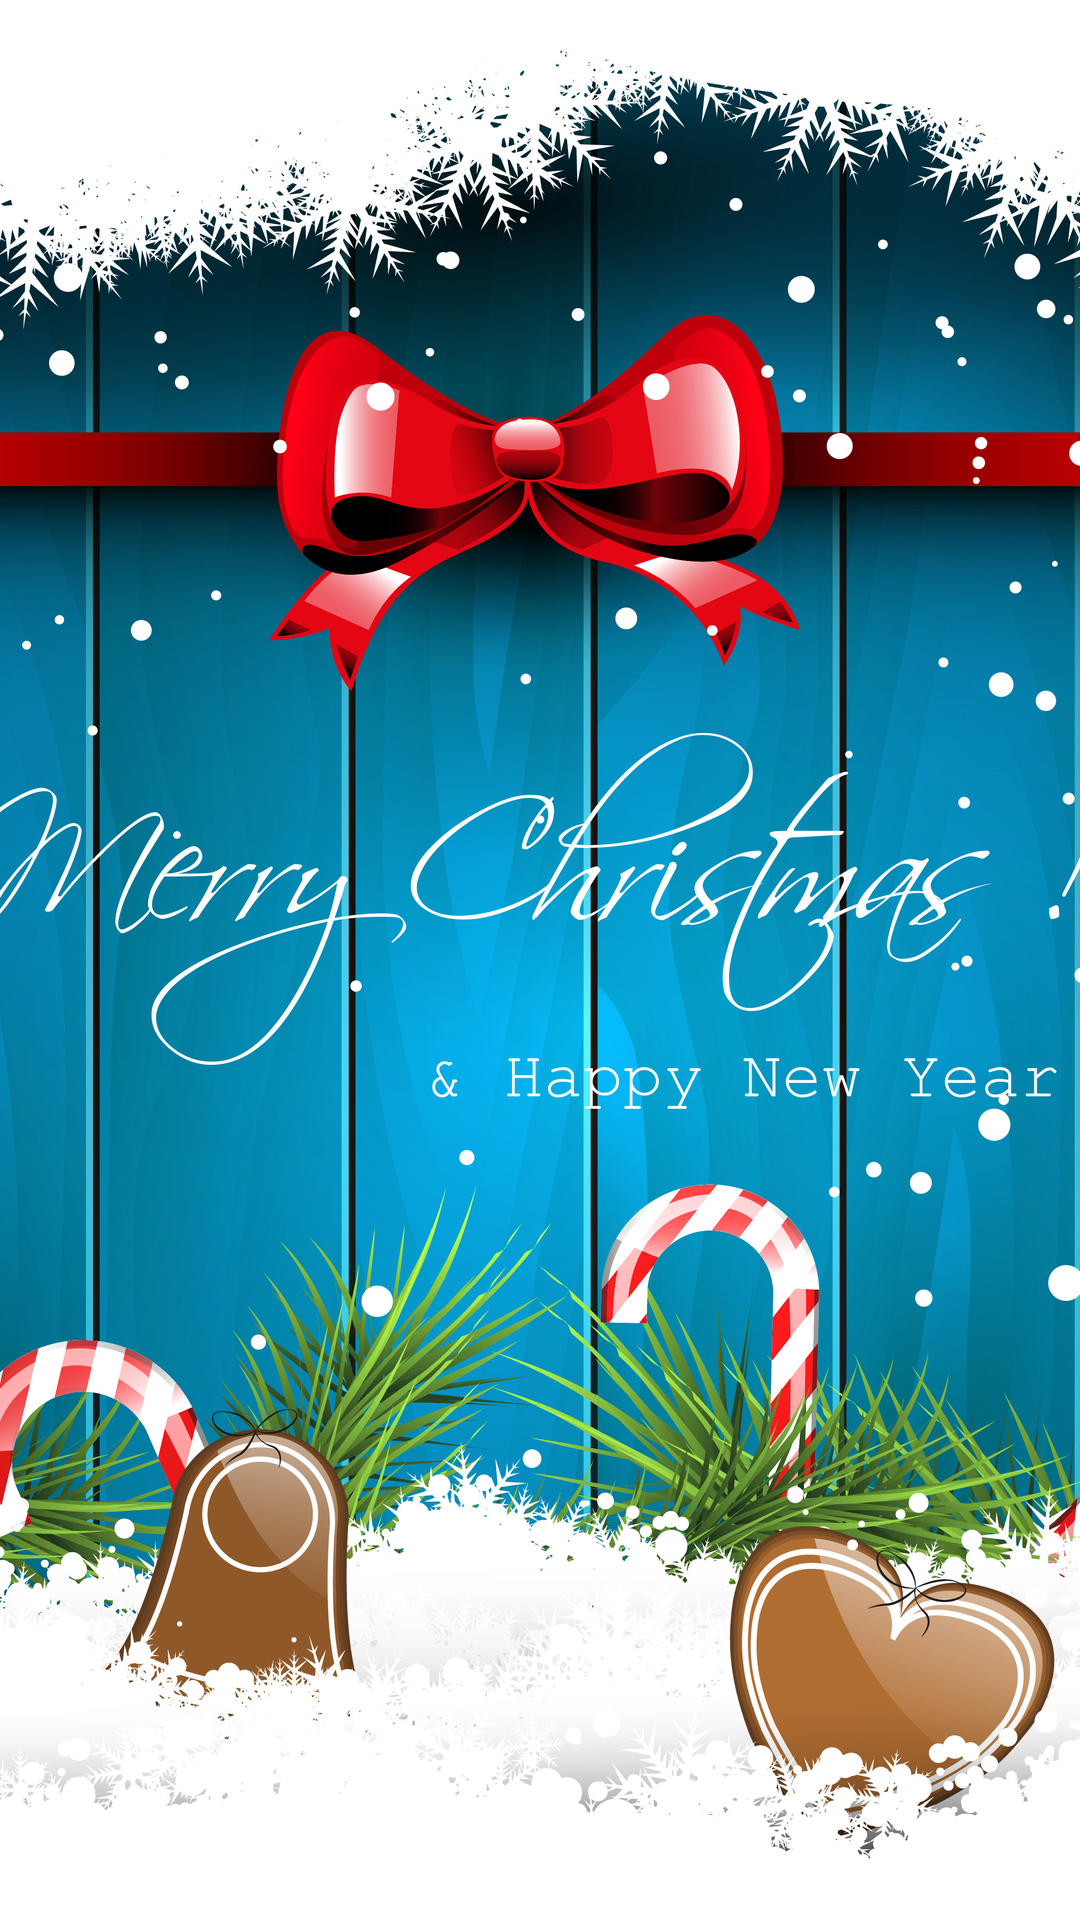 iPhone Wall: Christmas & HNY tjn | Xmas wallpaper ...